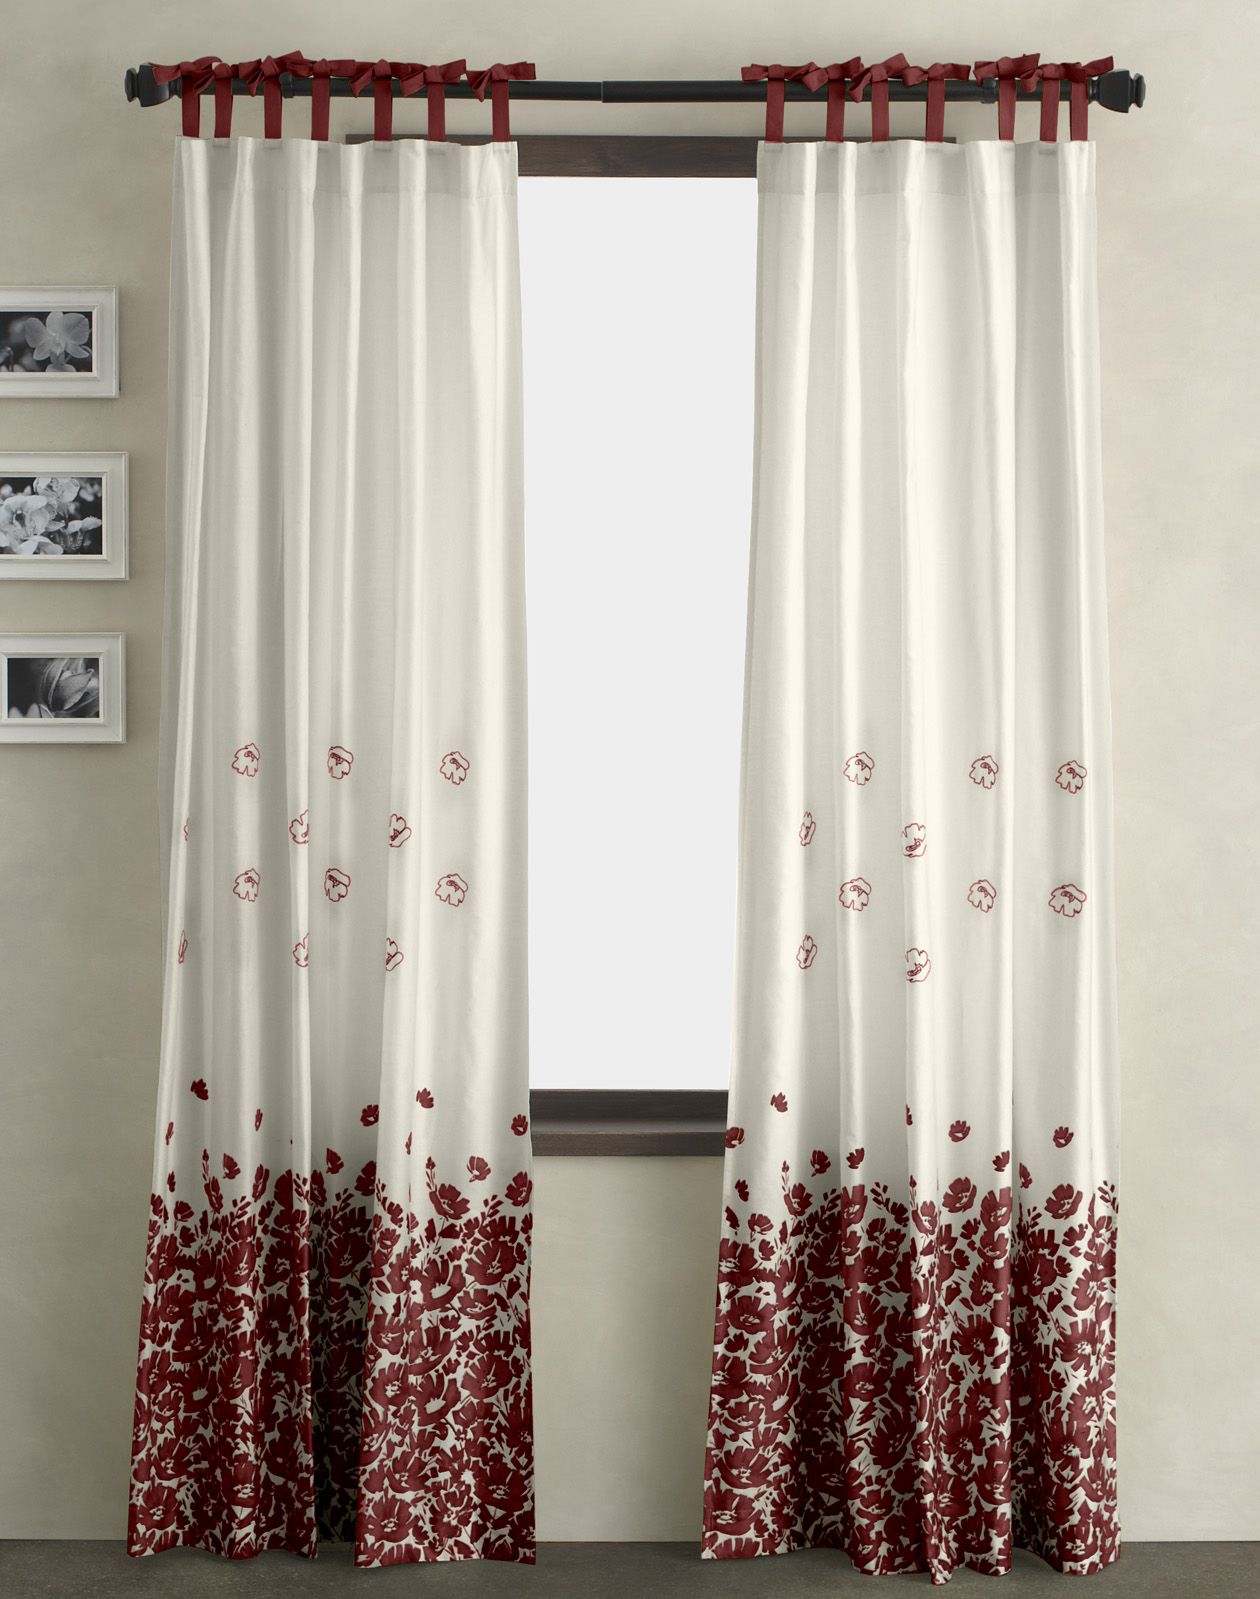 Door design for home in india joy studio design gallery for 3 window curtain design